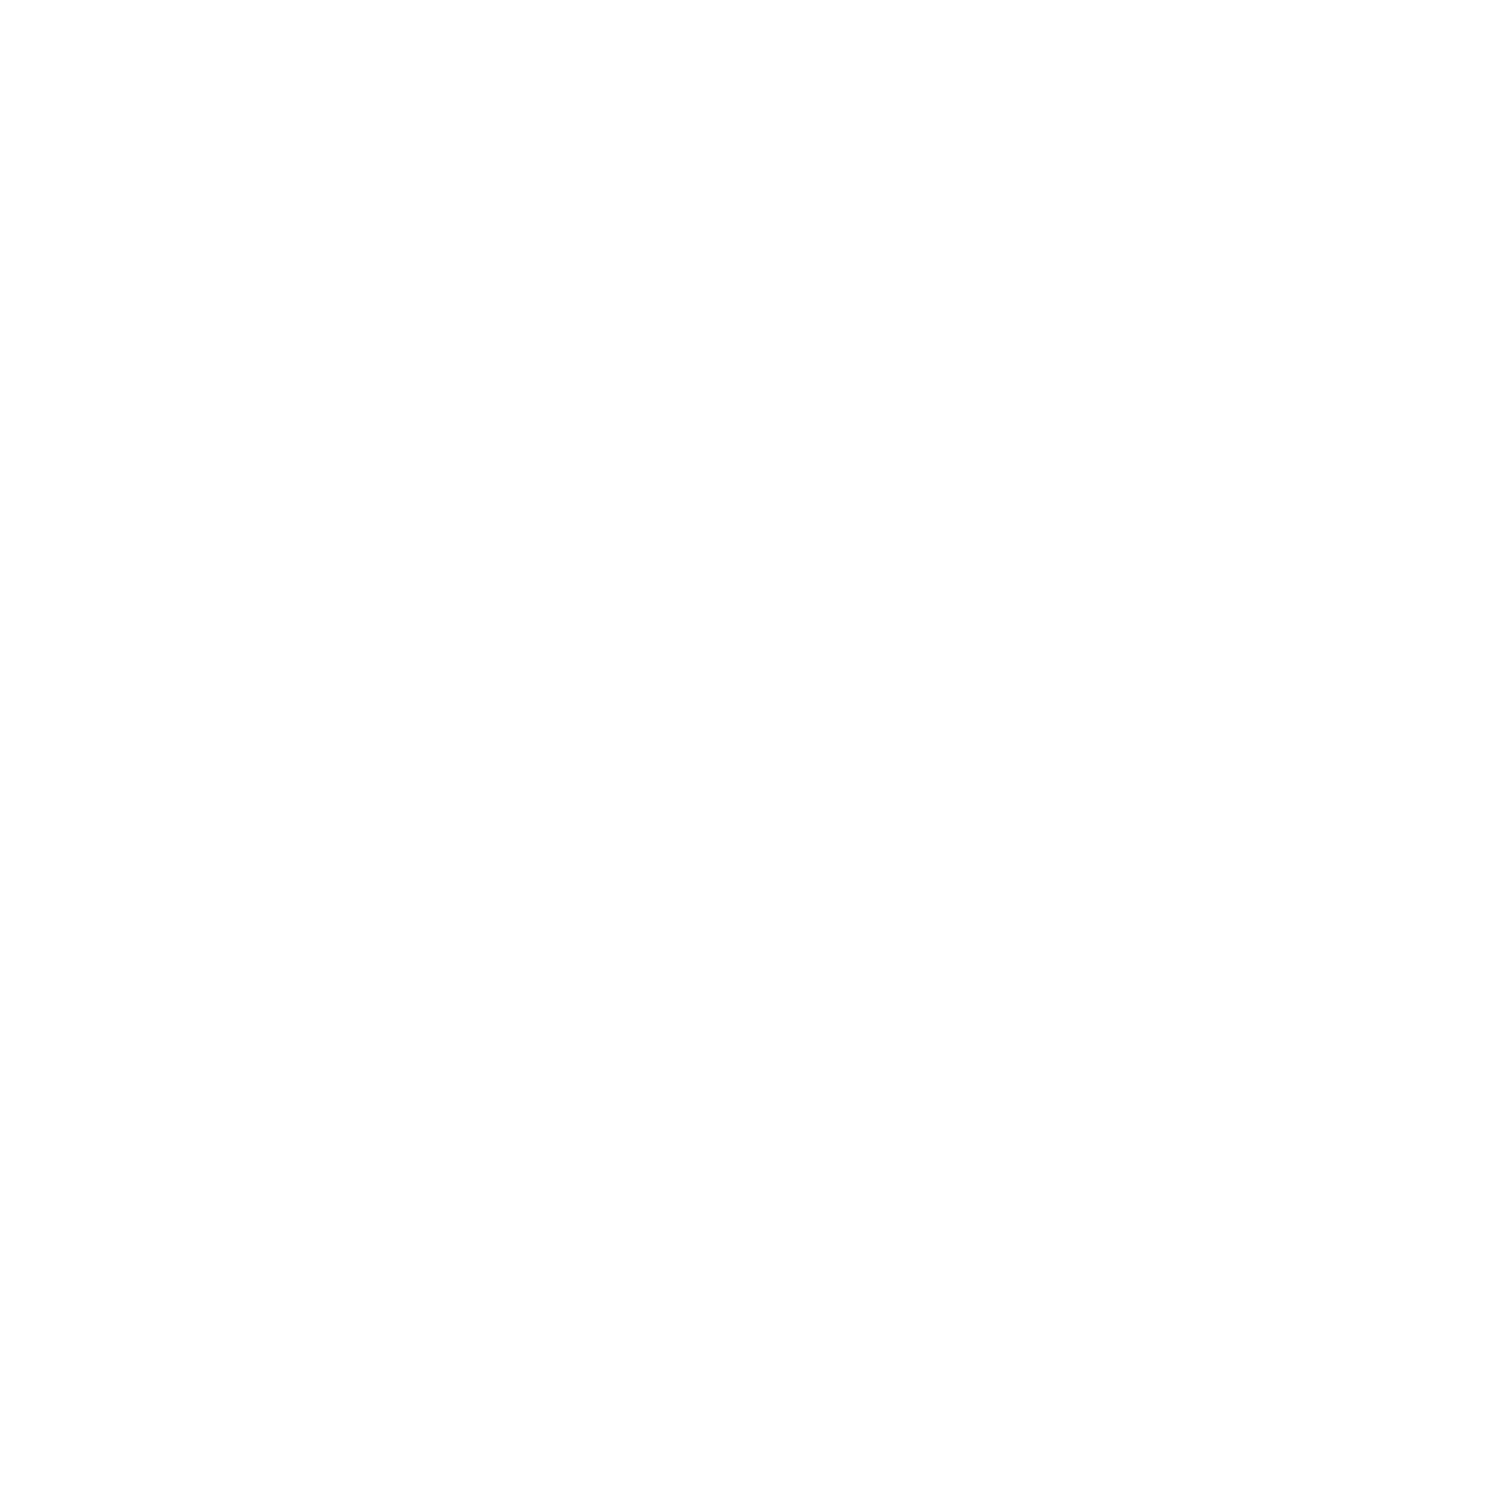 My City Church